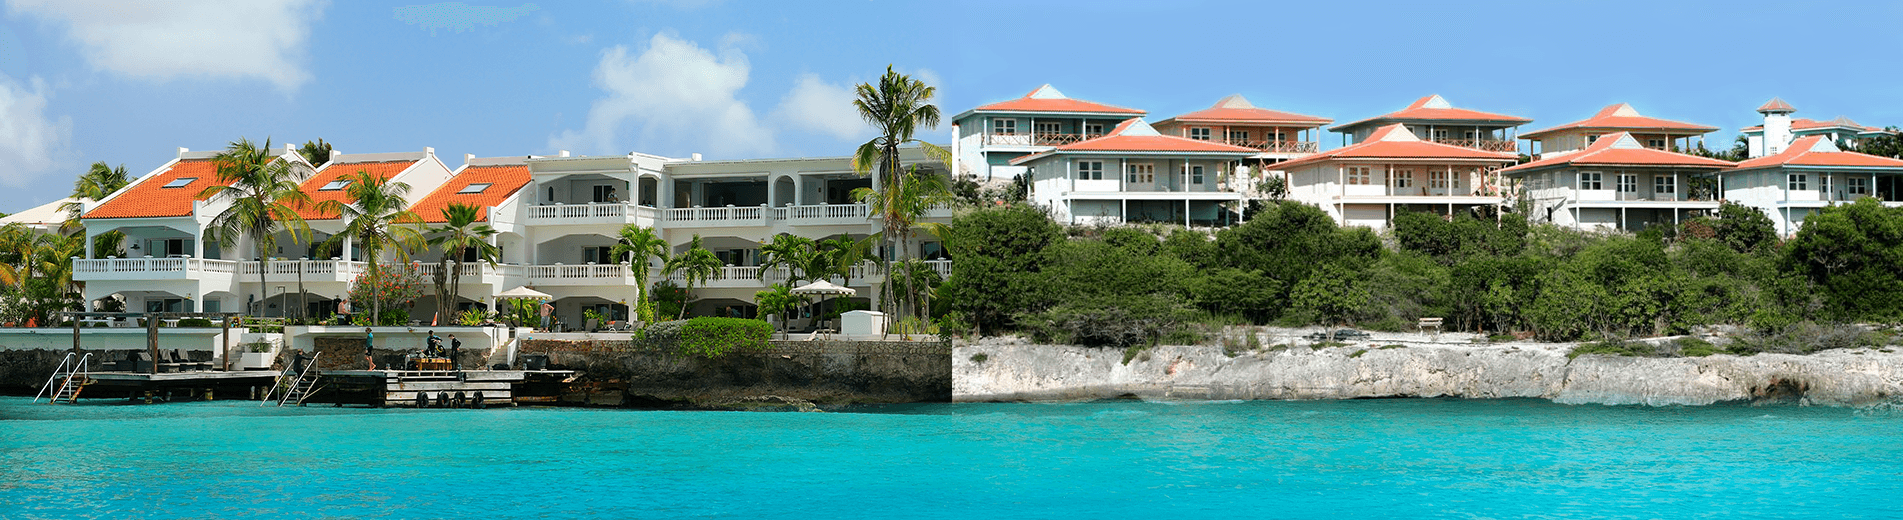 A Caribbean dive trip should also be a relaxing vacation. That's why in-the-know divers prefer the spacious comfort of Bonaire's Caribbean Club (seen on the right) and Belmar Oceanfront Apartments (seen on the left) for their vacations.